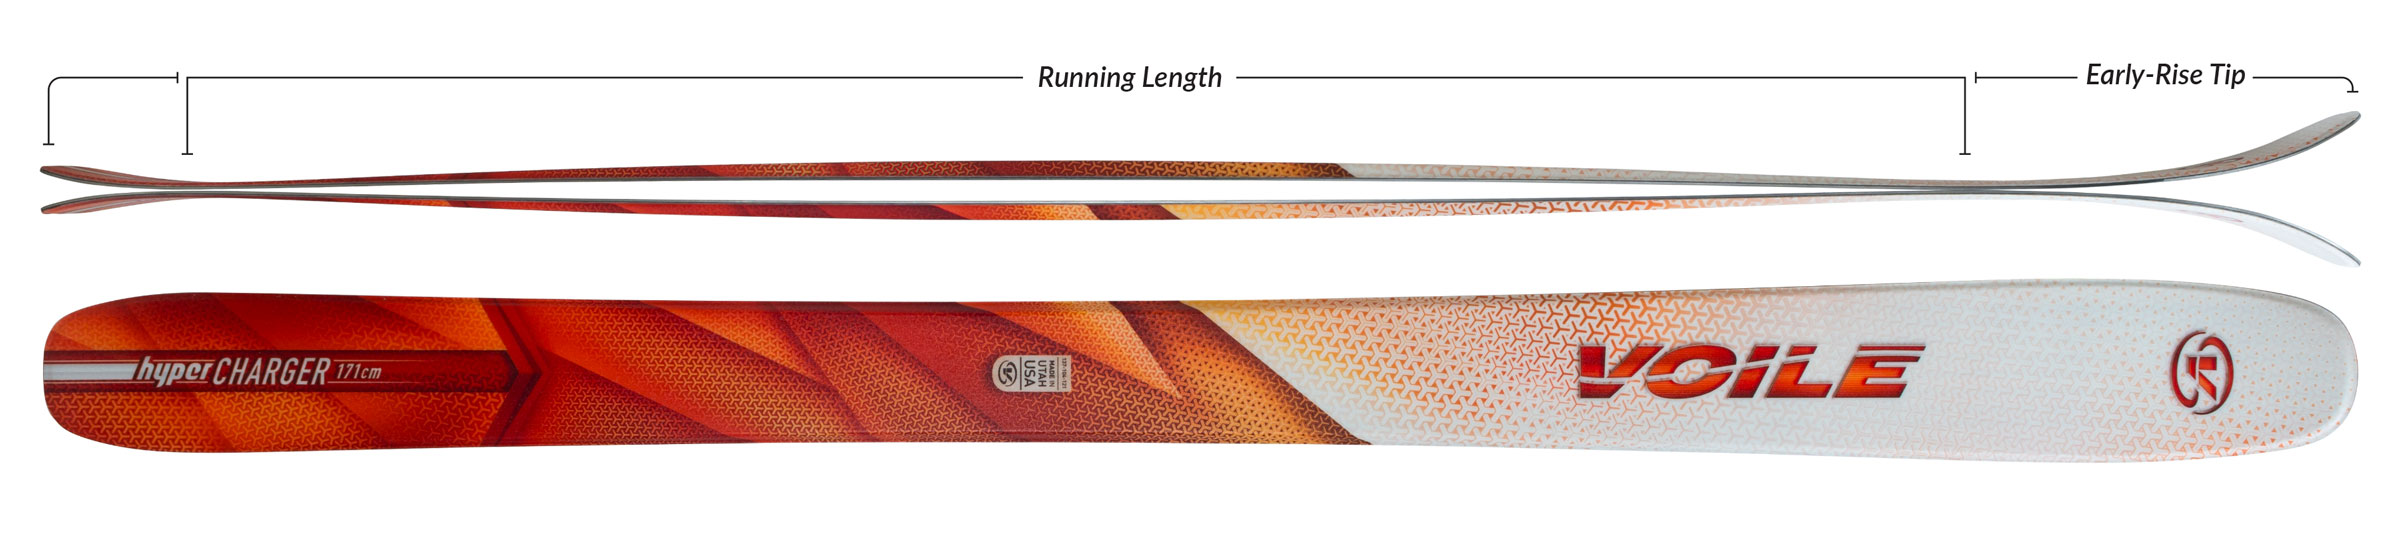 Voile HyperCharger Skis Camber Profile